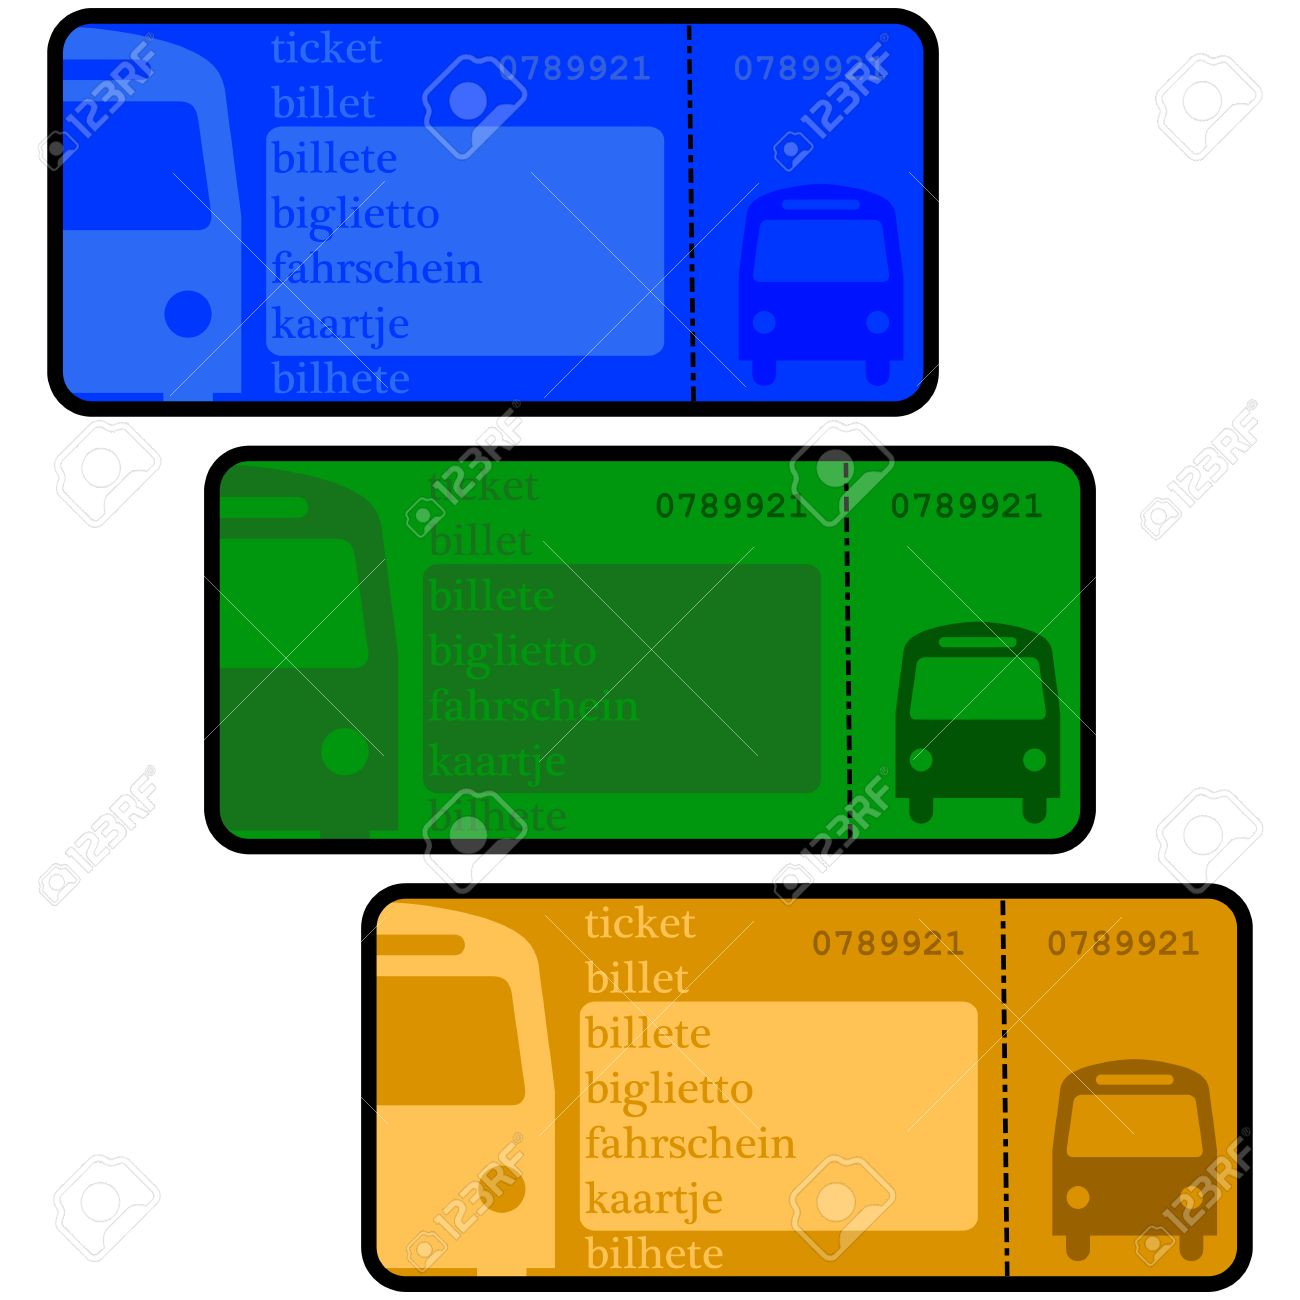 Cartoon Illustration Showing Bus Ticket Templates In Different Colors Stock  Vector   25637199  Bus Ticket Template